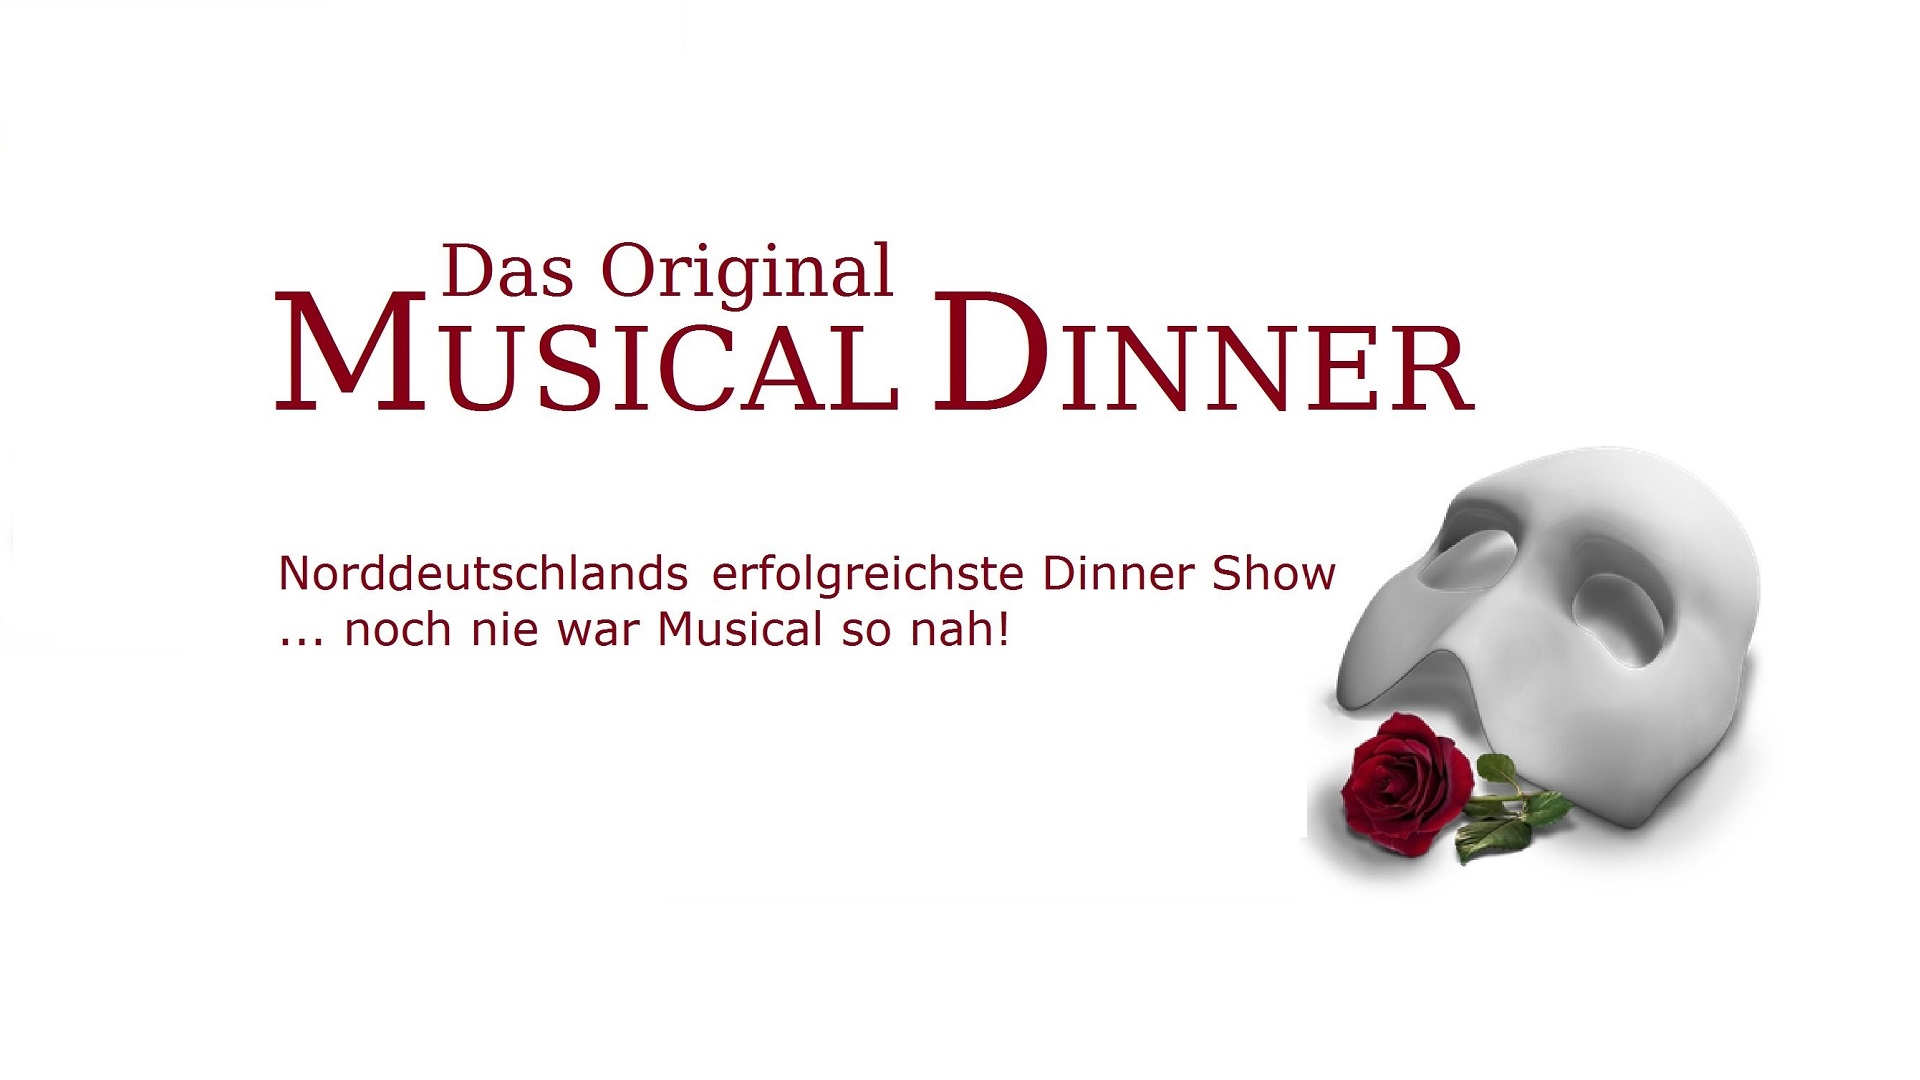 Musical Dinner (Das Original) © glamour-events.com